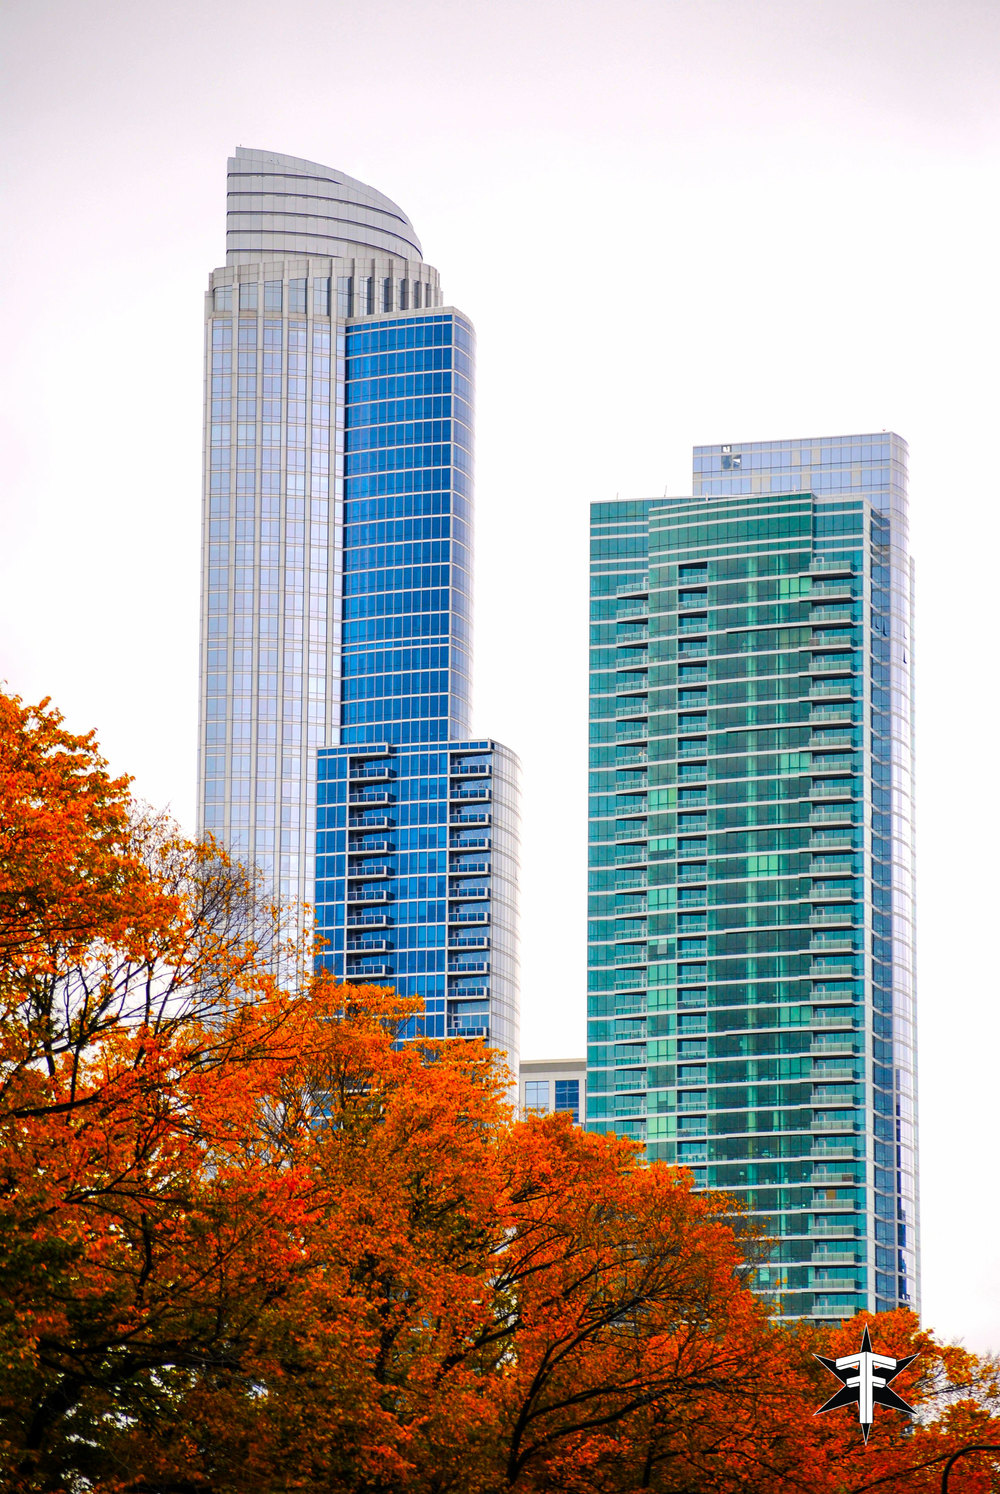 chicago architecture eric formato photography design arquitectura architettura buildings skyscraper skyscrapers-24.jpg